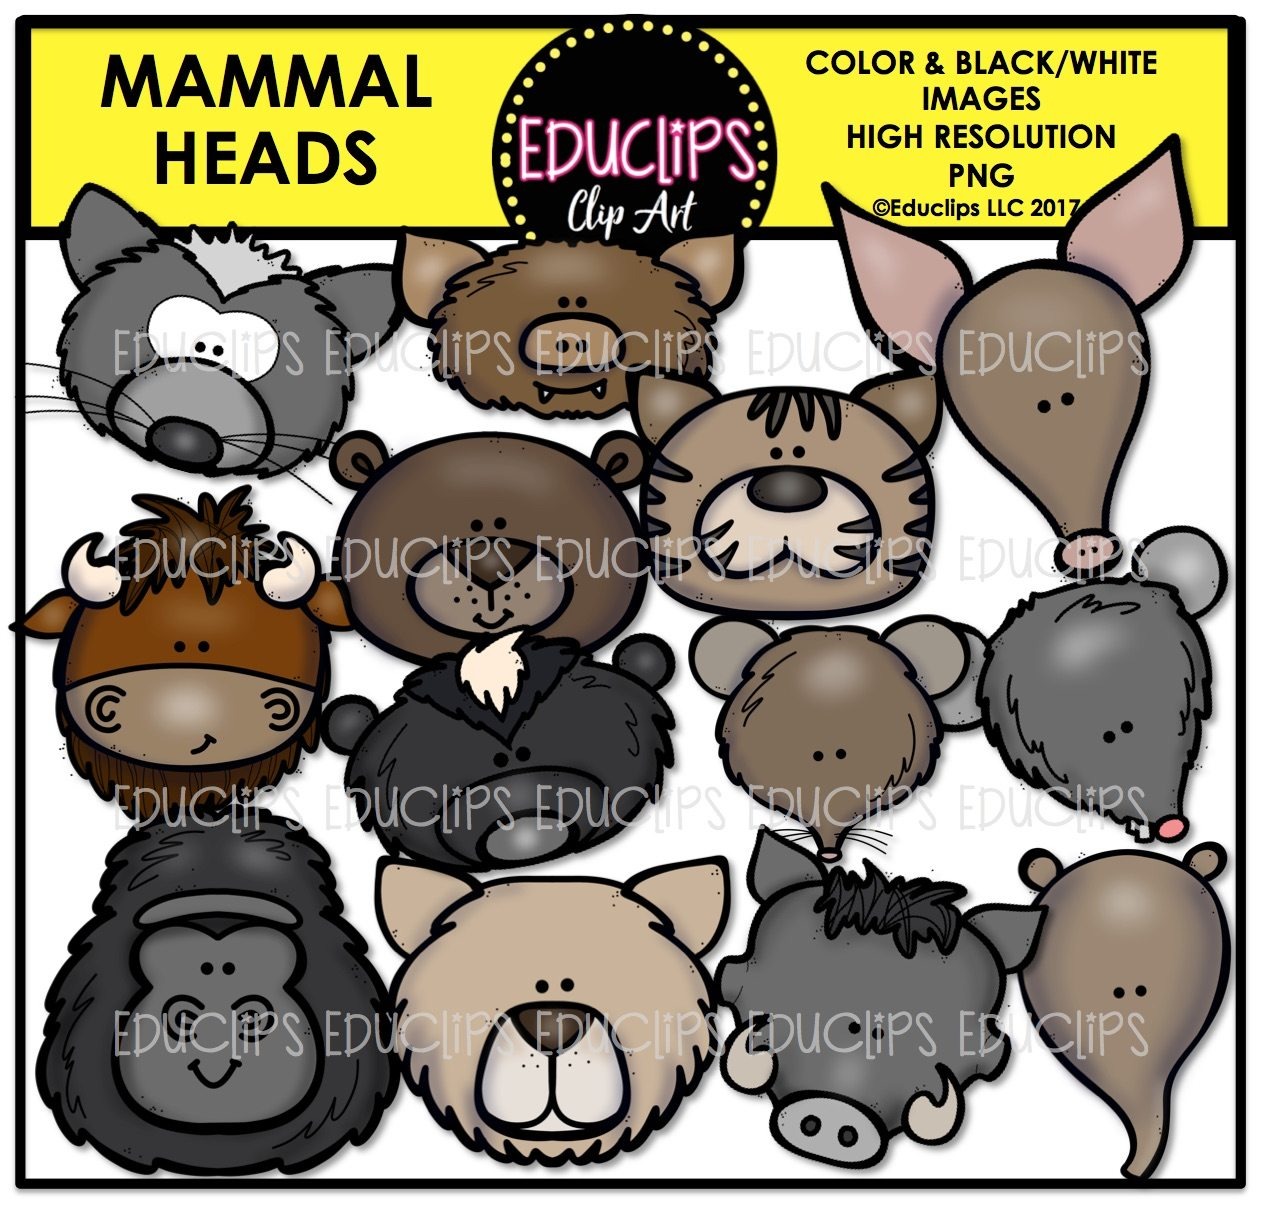 Animal Heads Clip Art Mega Bundle (Color and Bu0026W)